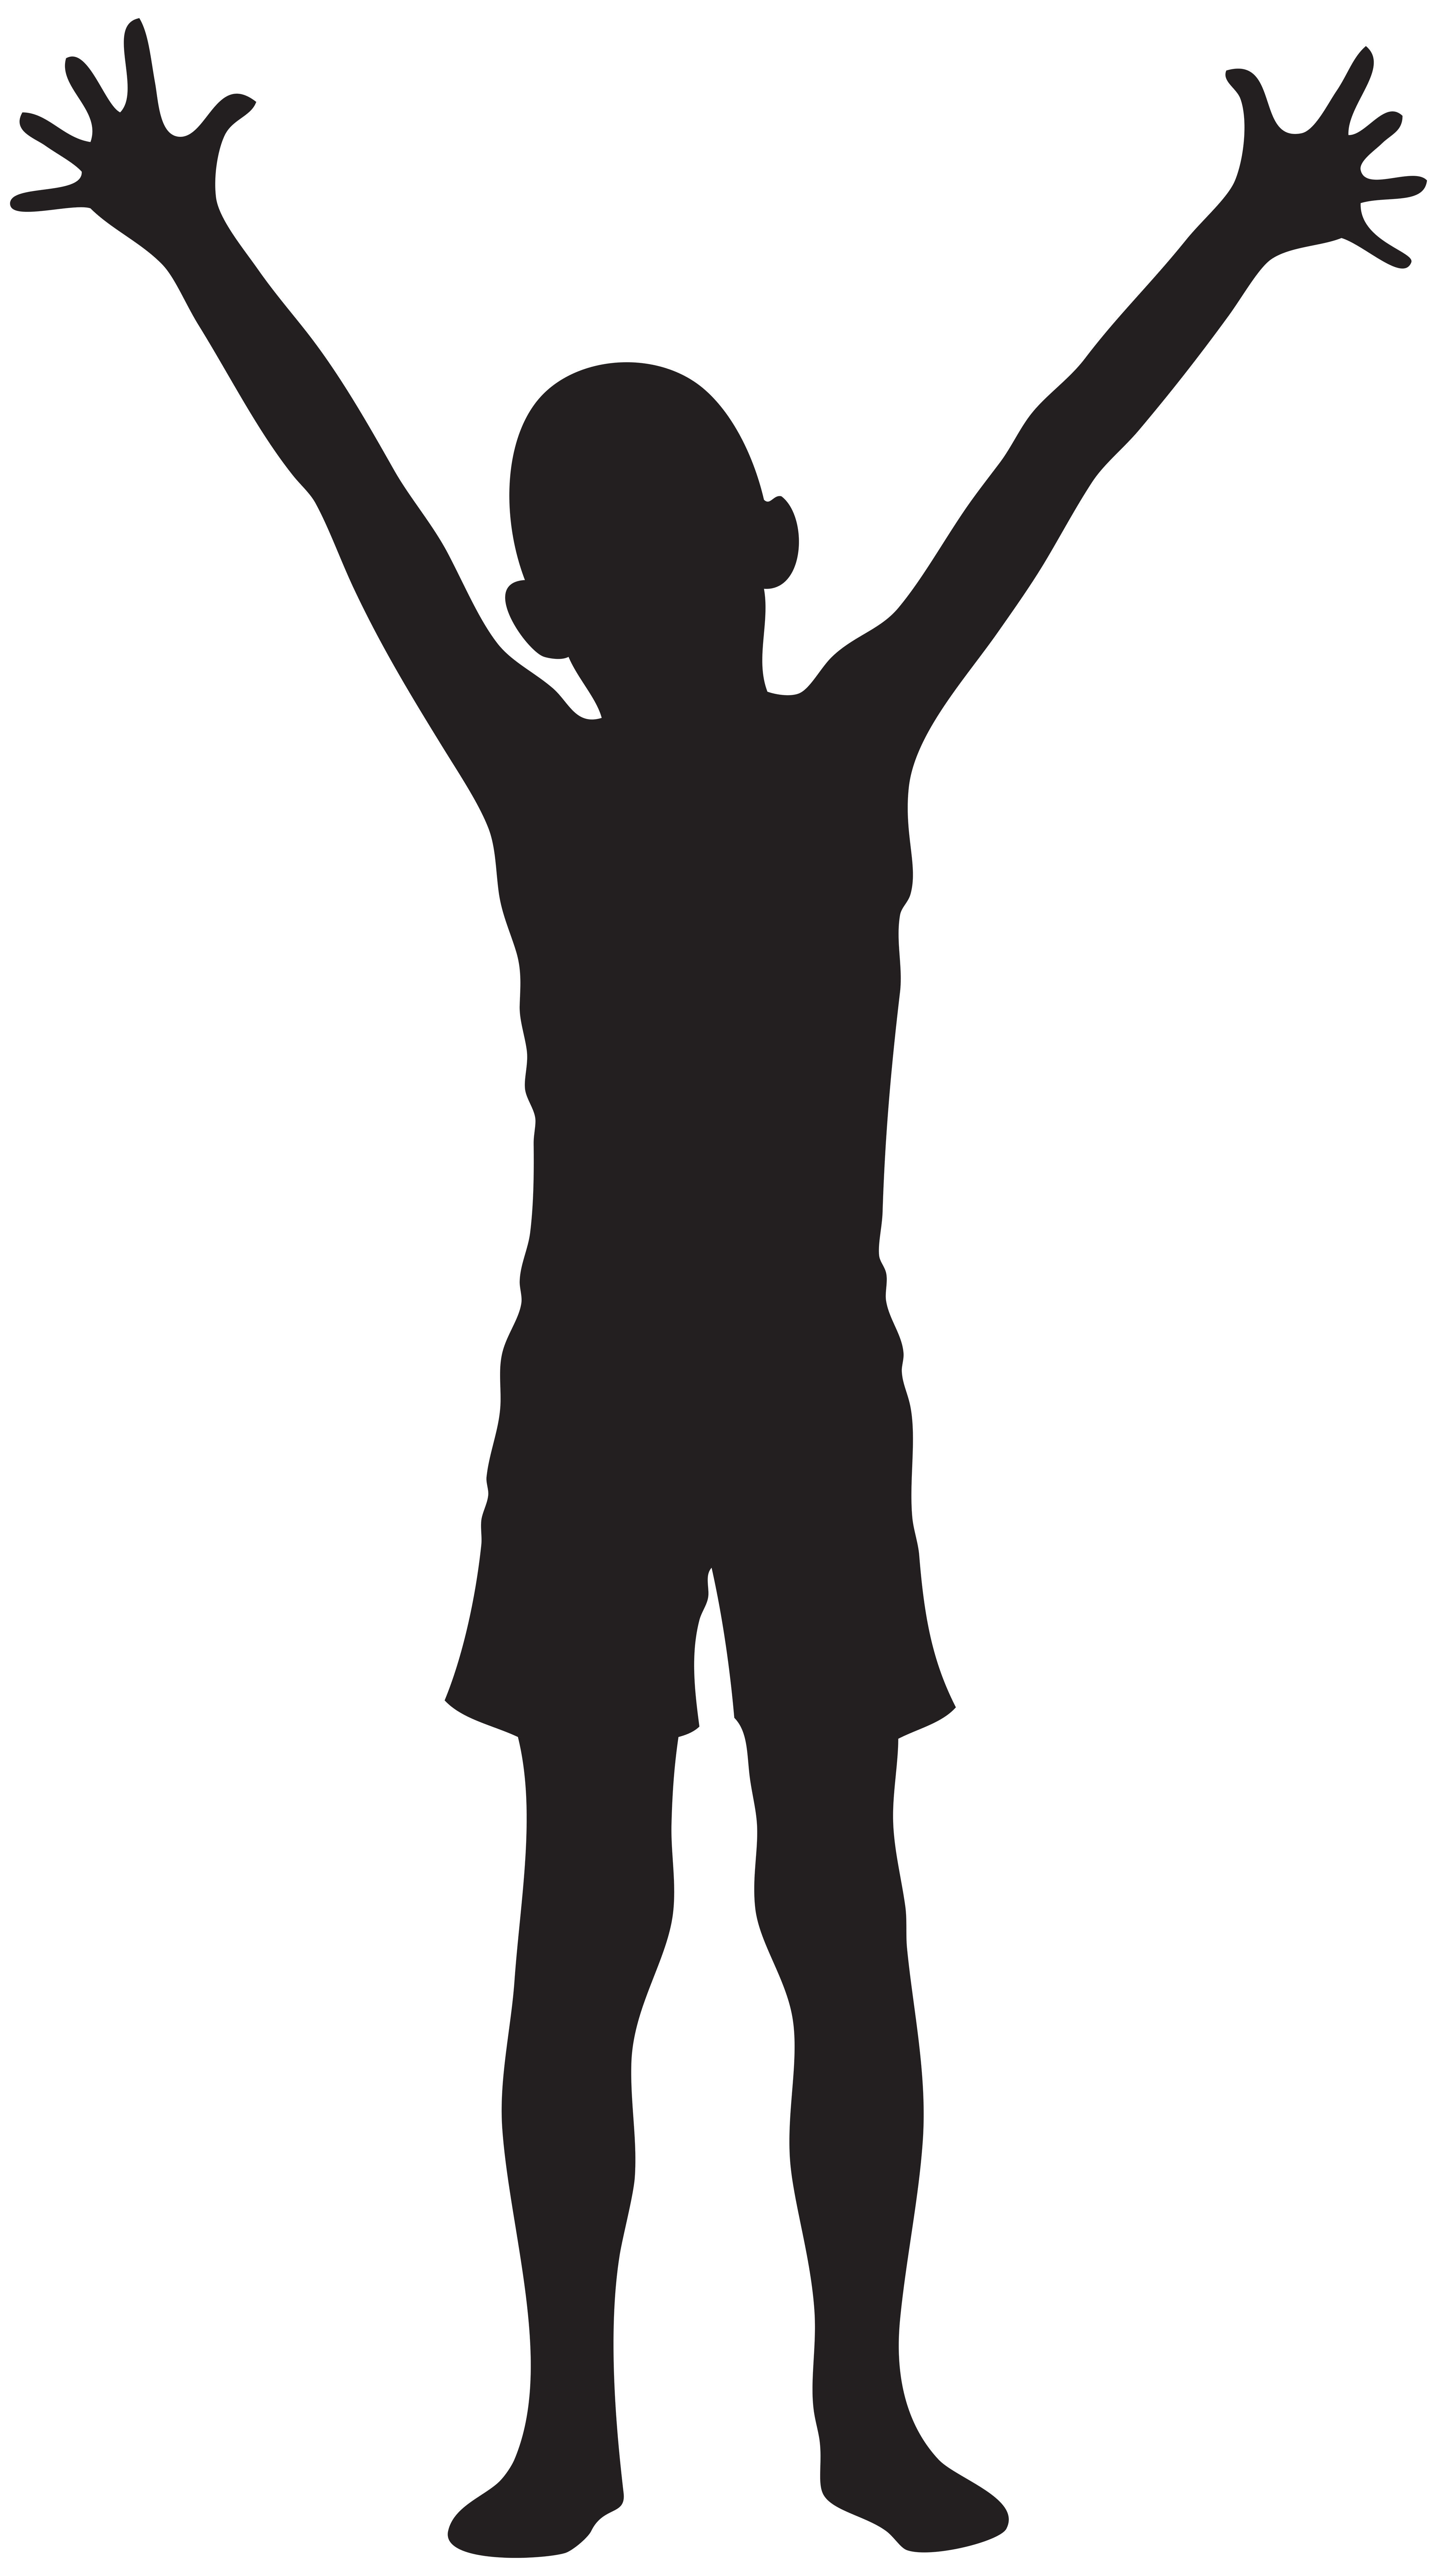 Boy silhouette png. Clip art image gallery